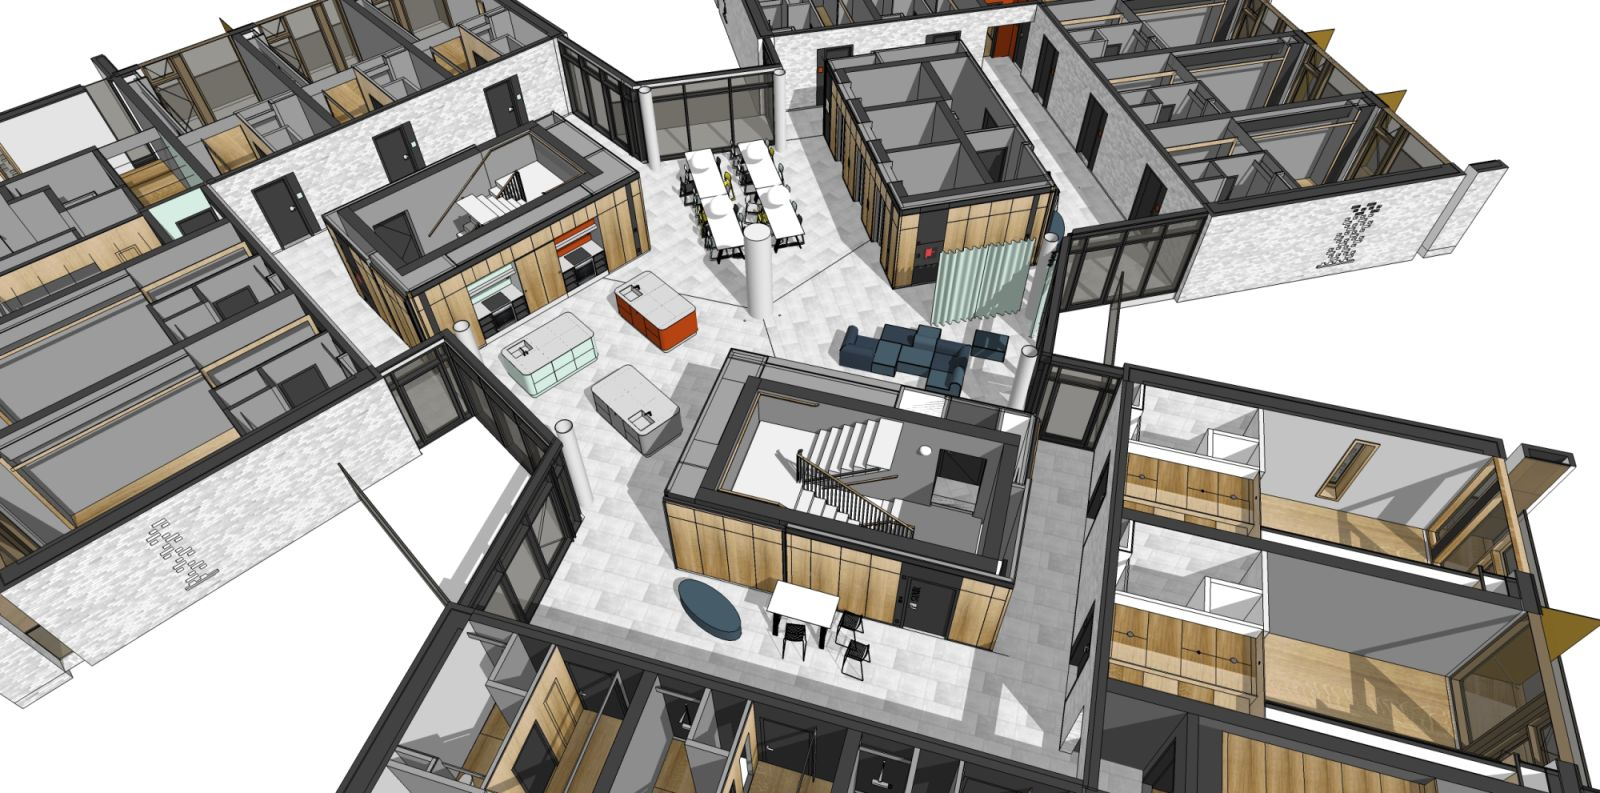 Student Housing for the University of Southern Denmark